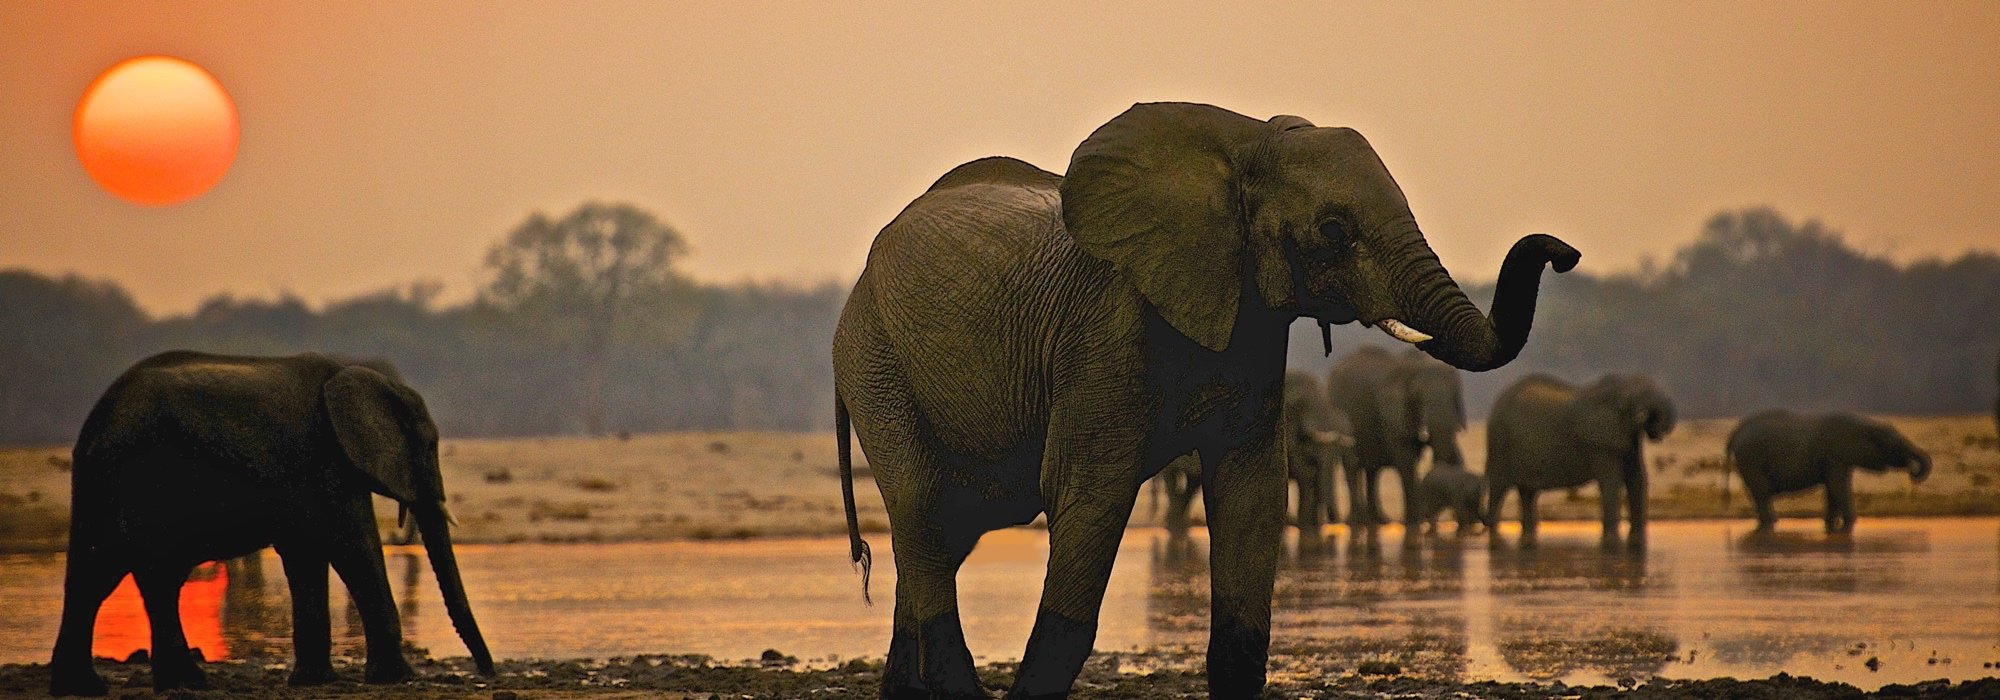 Elephants at Hwange National Park